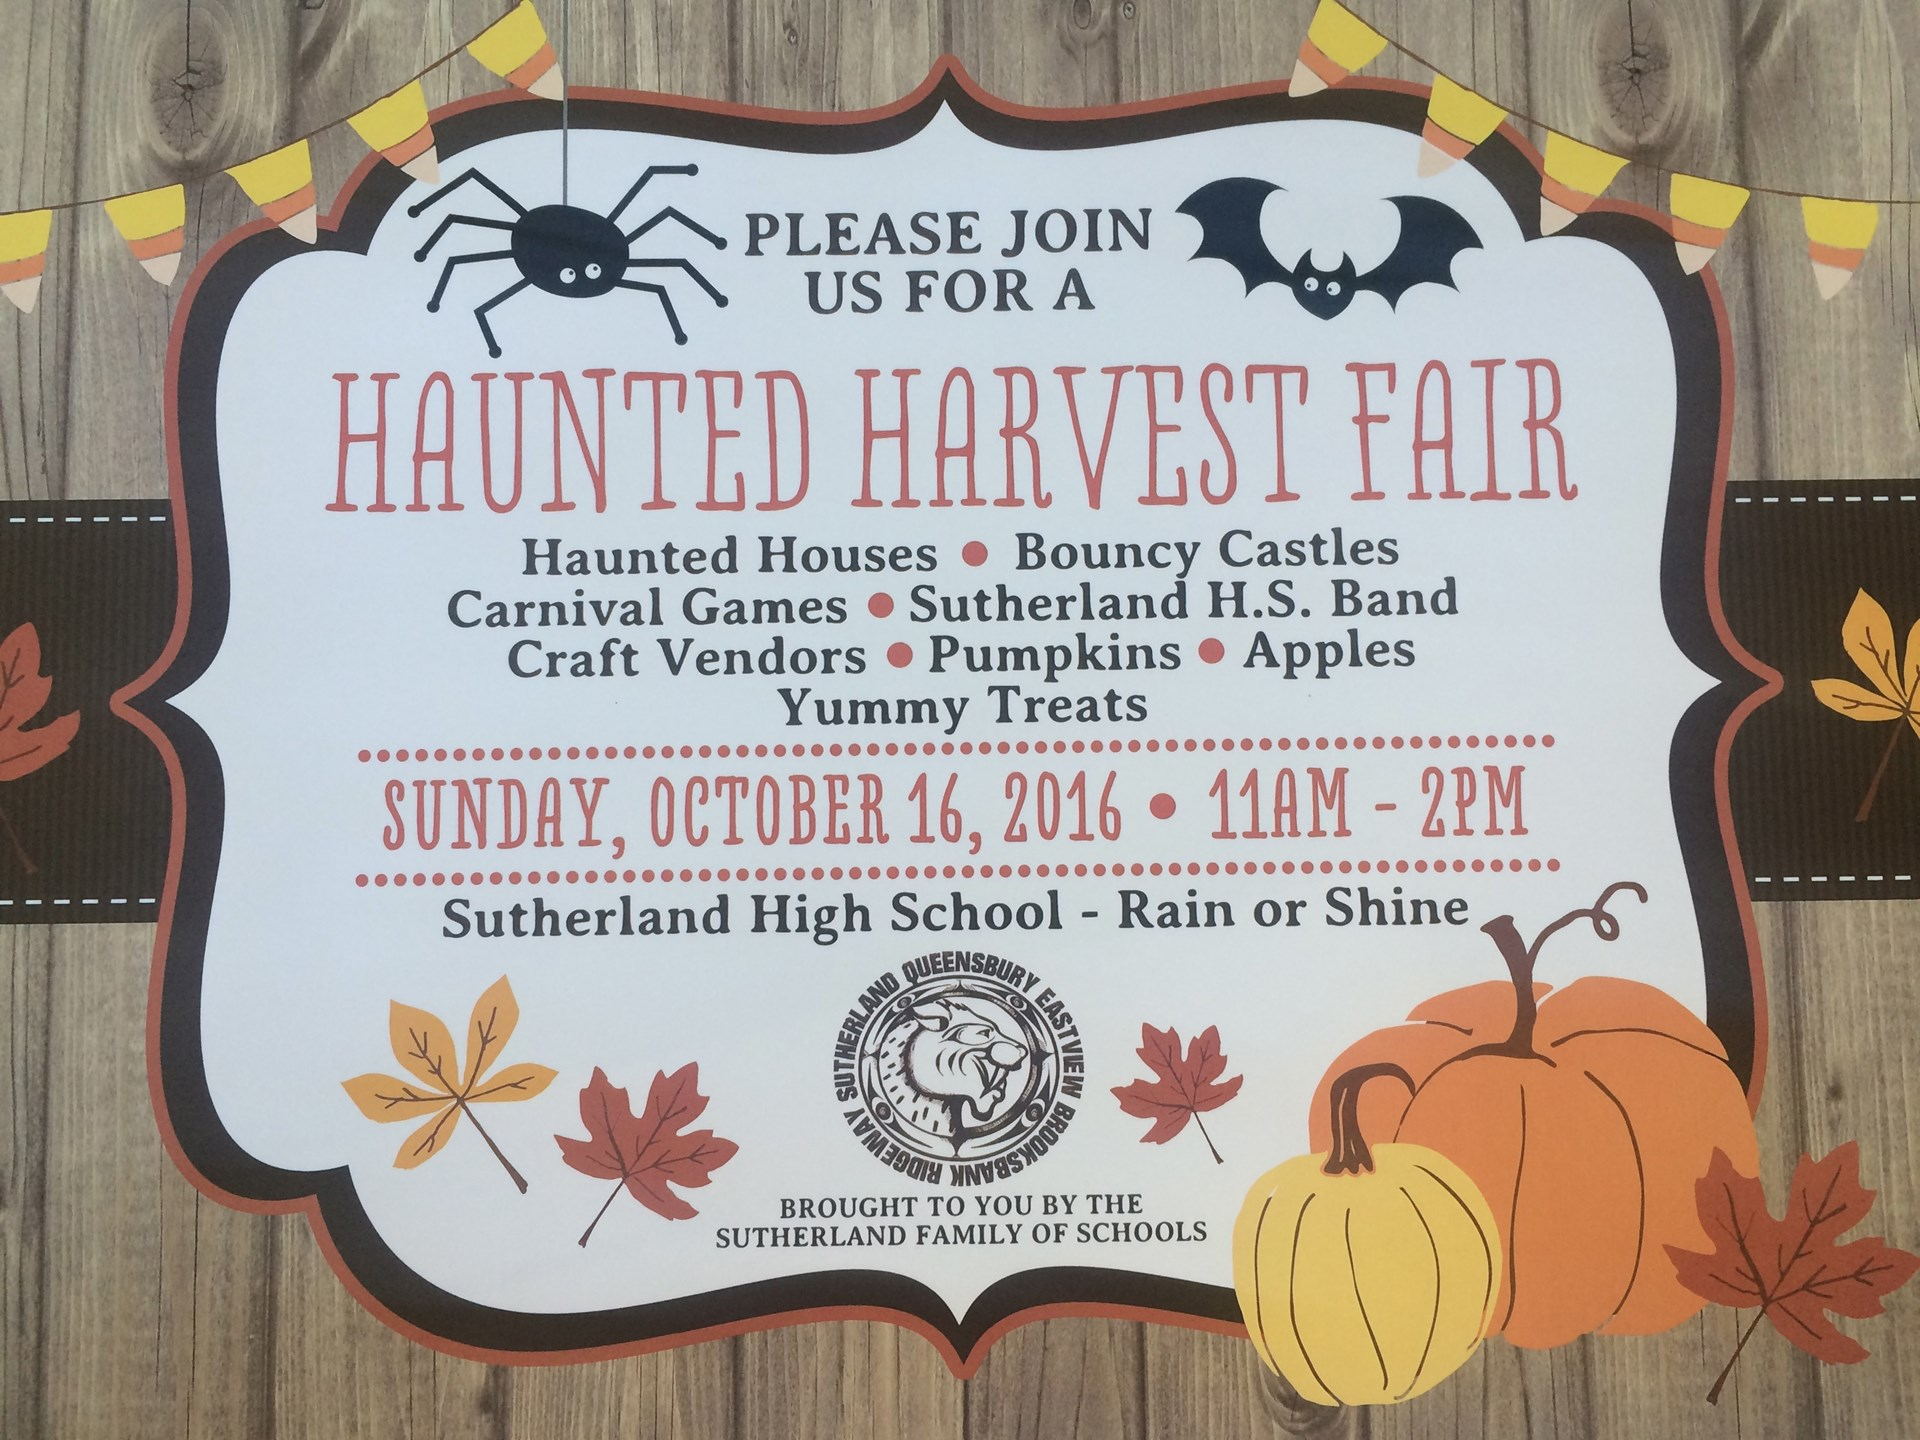 Family of Schools Harvest Fair at SUTHERLAND SECONDARY